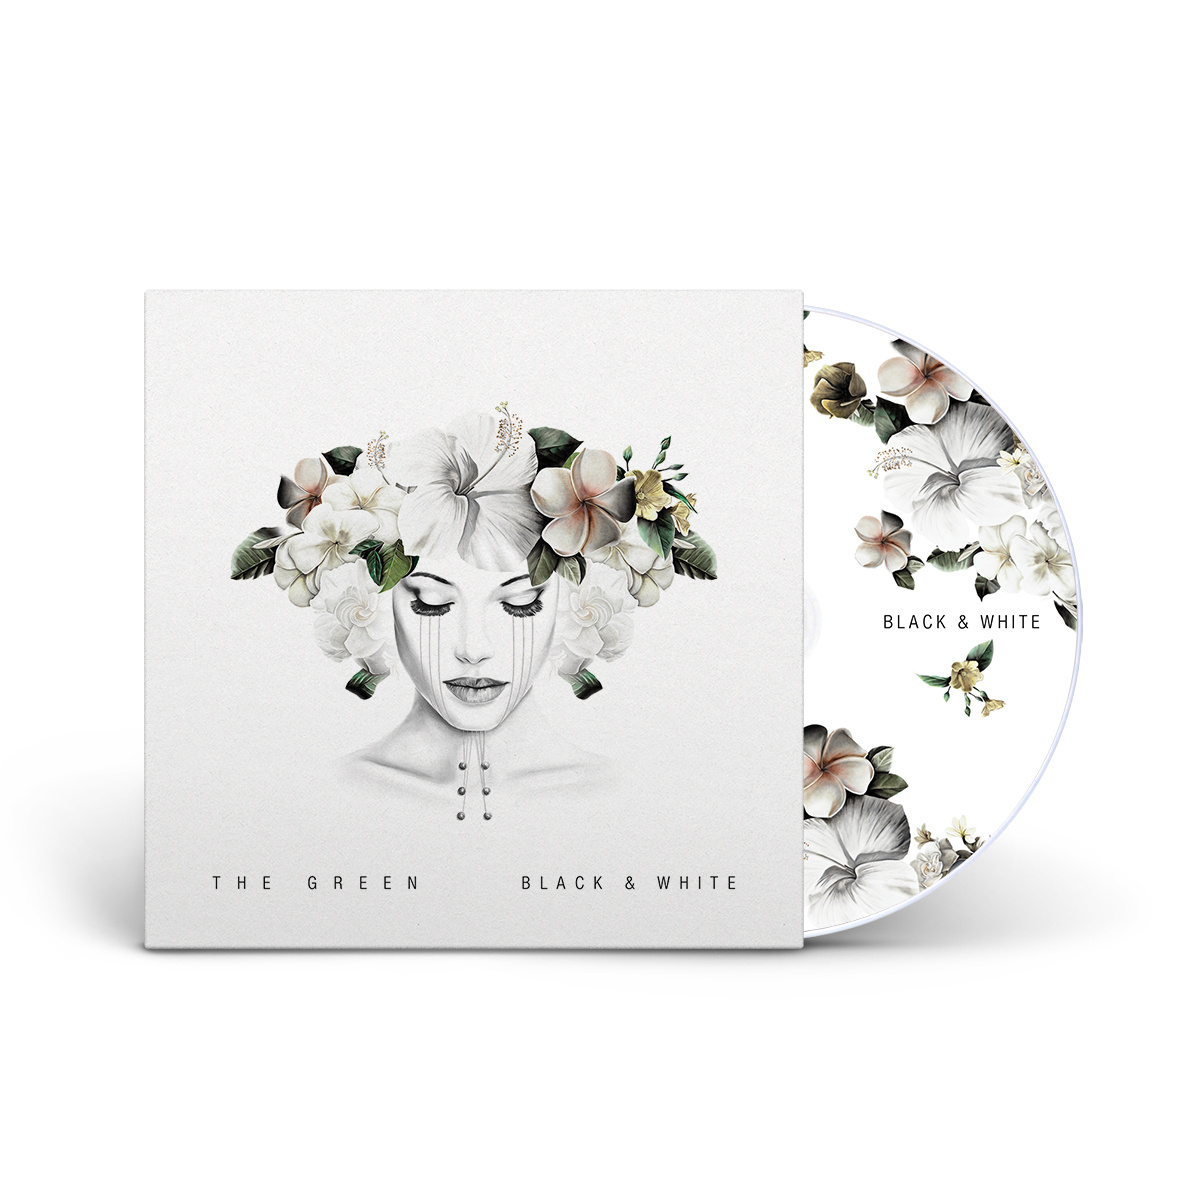 The Green: Black & White CD